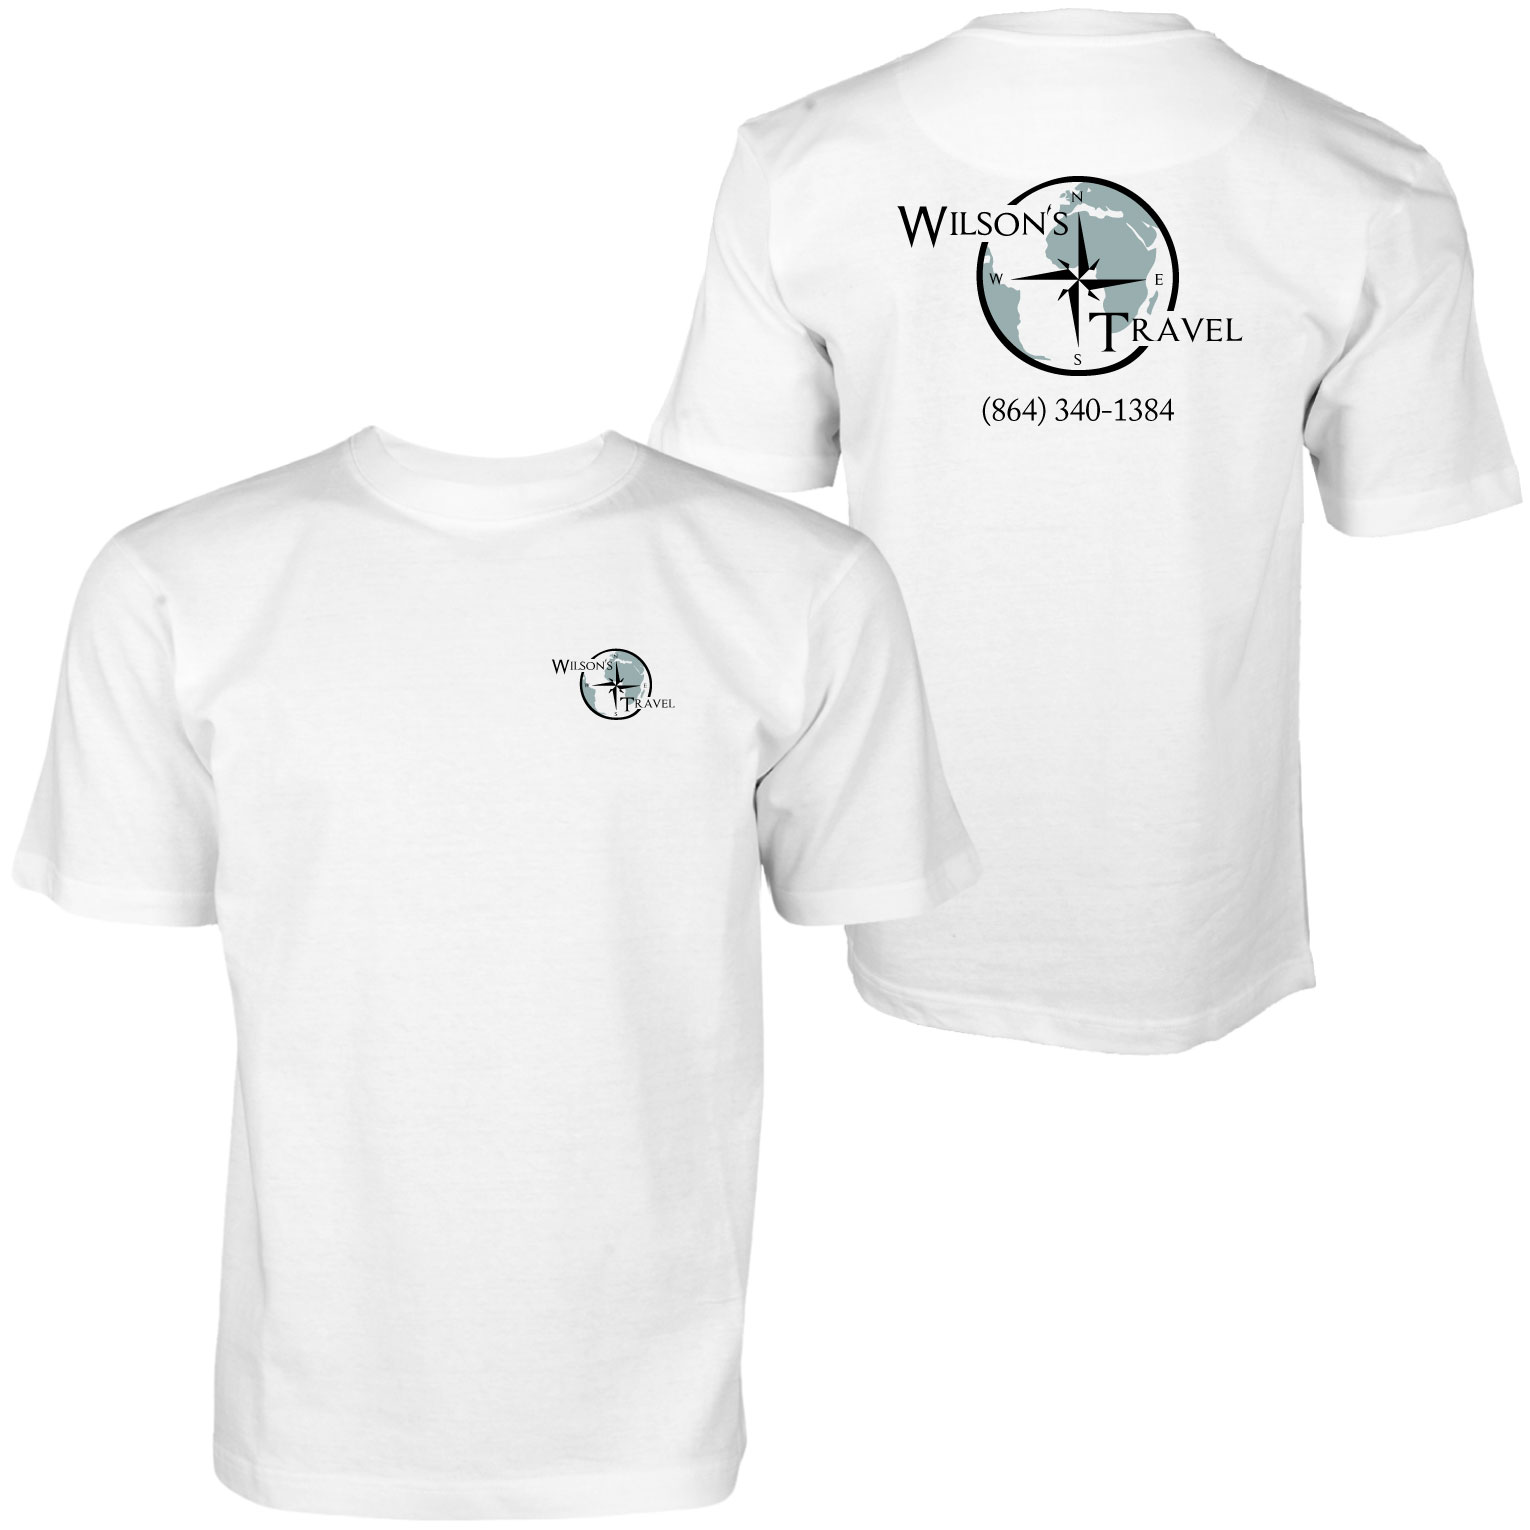 Blank black t shirt front and back - Blank White T Shirts Front And Back White Tshirt Front